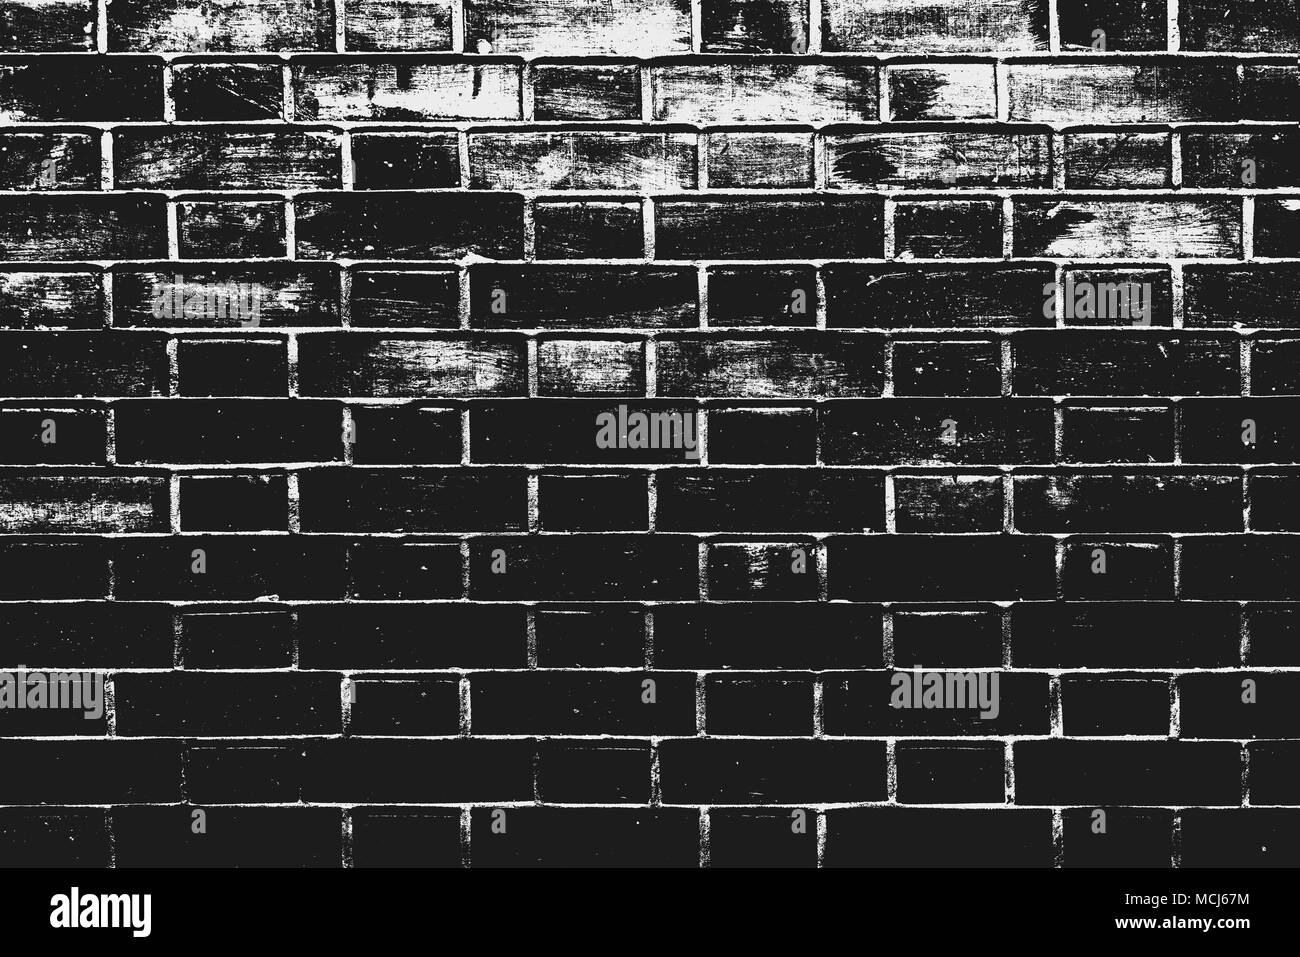 Black and white brick wall pattern as background. Texture of bricks with treshold effects as design element. - Stock Image